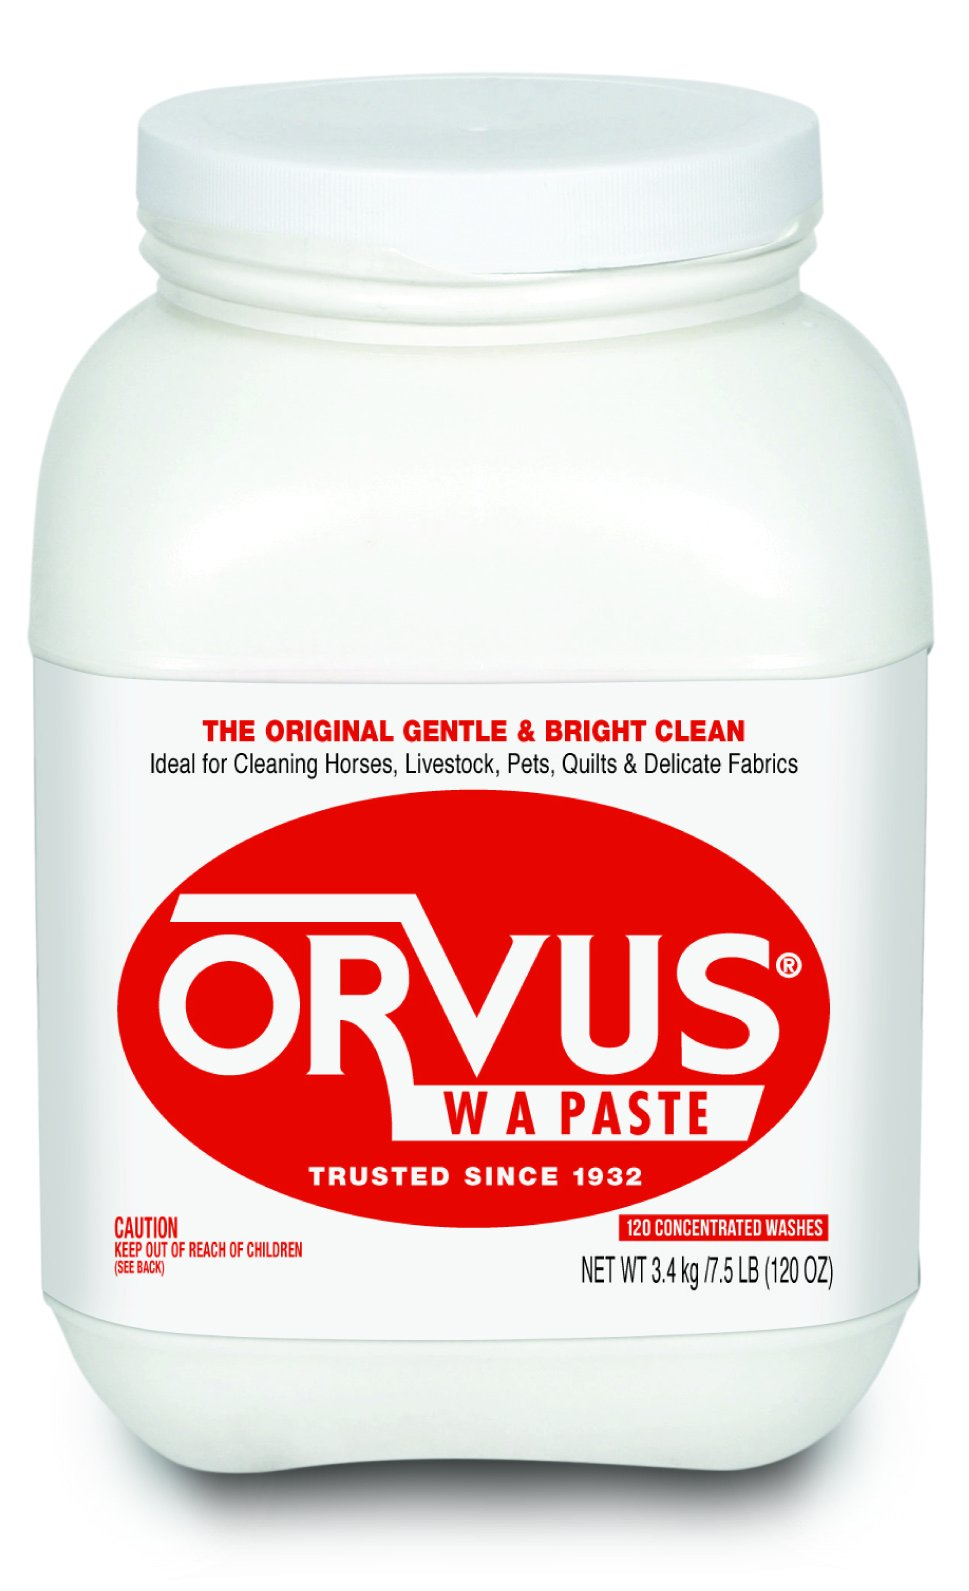 Orvus Wa Paste Cleaner - 120 Ounce by ORVUS